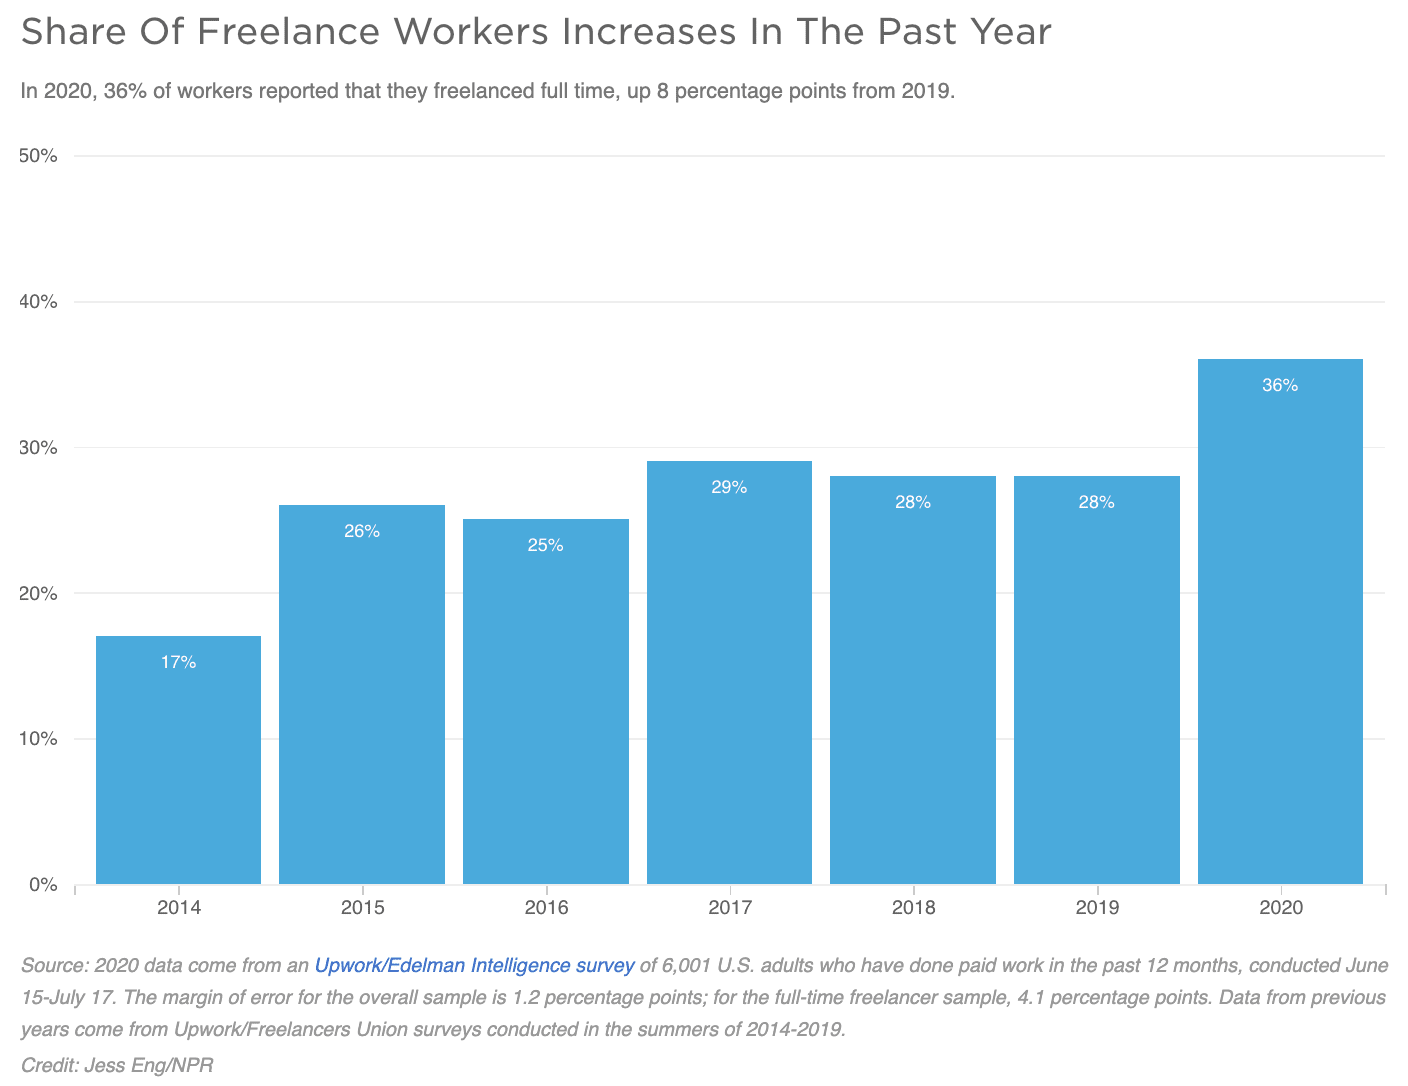 Share of Freelance Workers Chart   The Freelance Movement